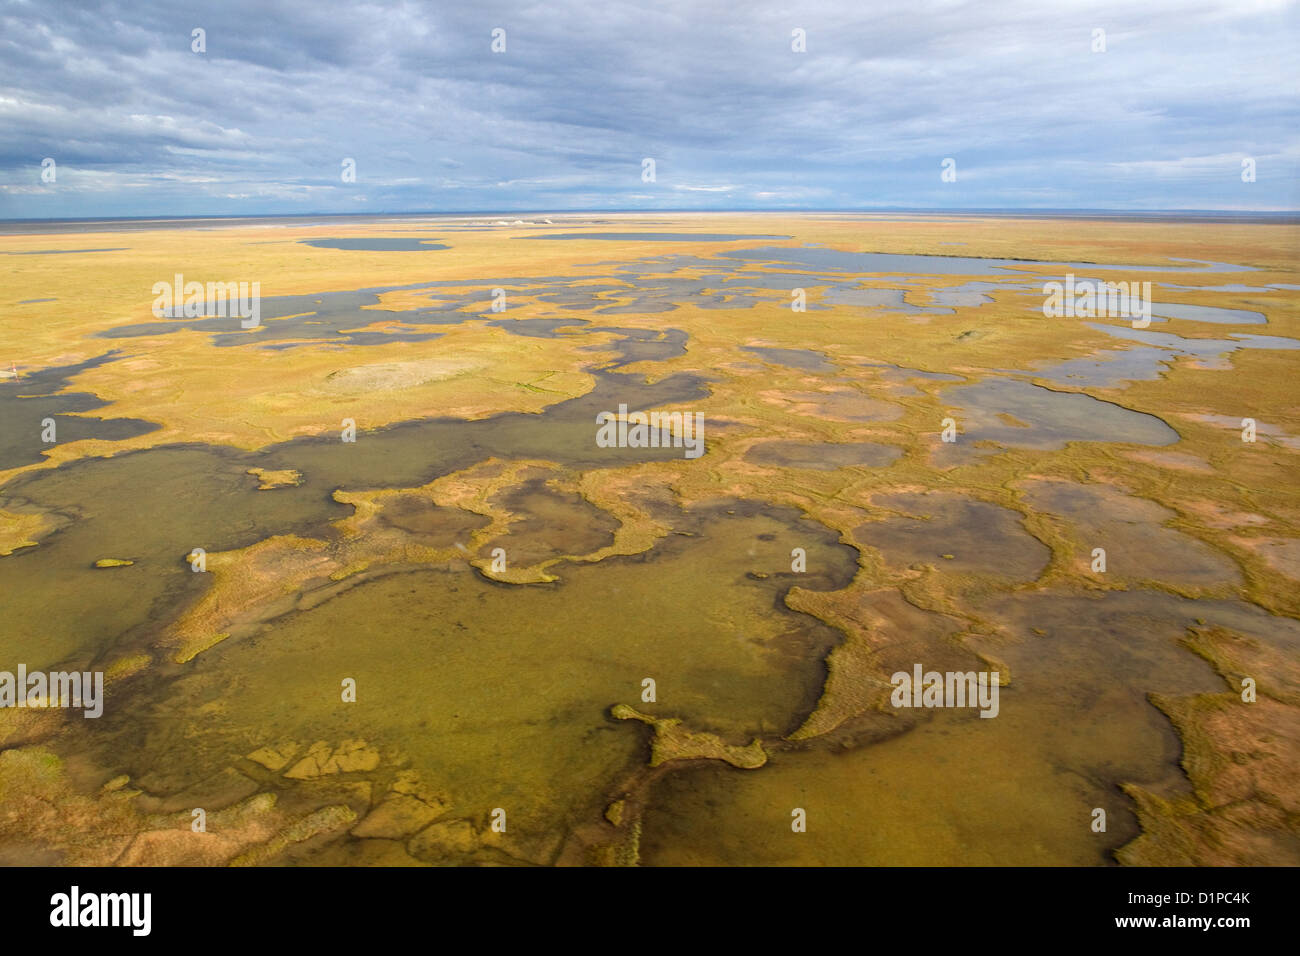 Alaska Arctic tundra potholes, Aerial view, Arctic landscape wilderness - Stock Image